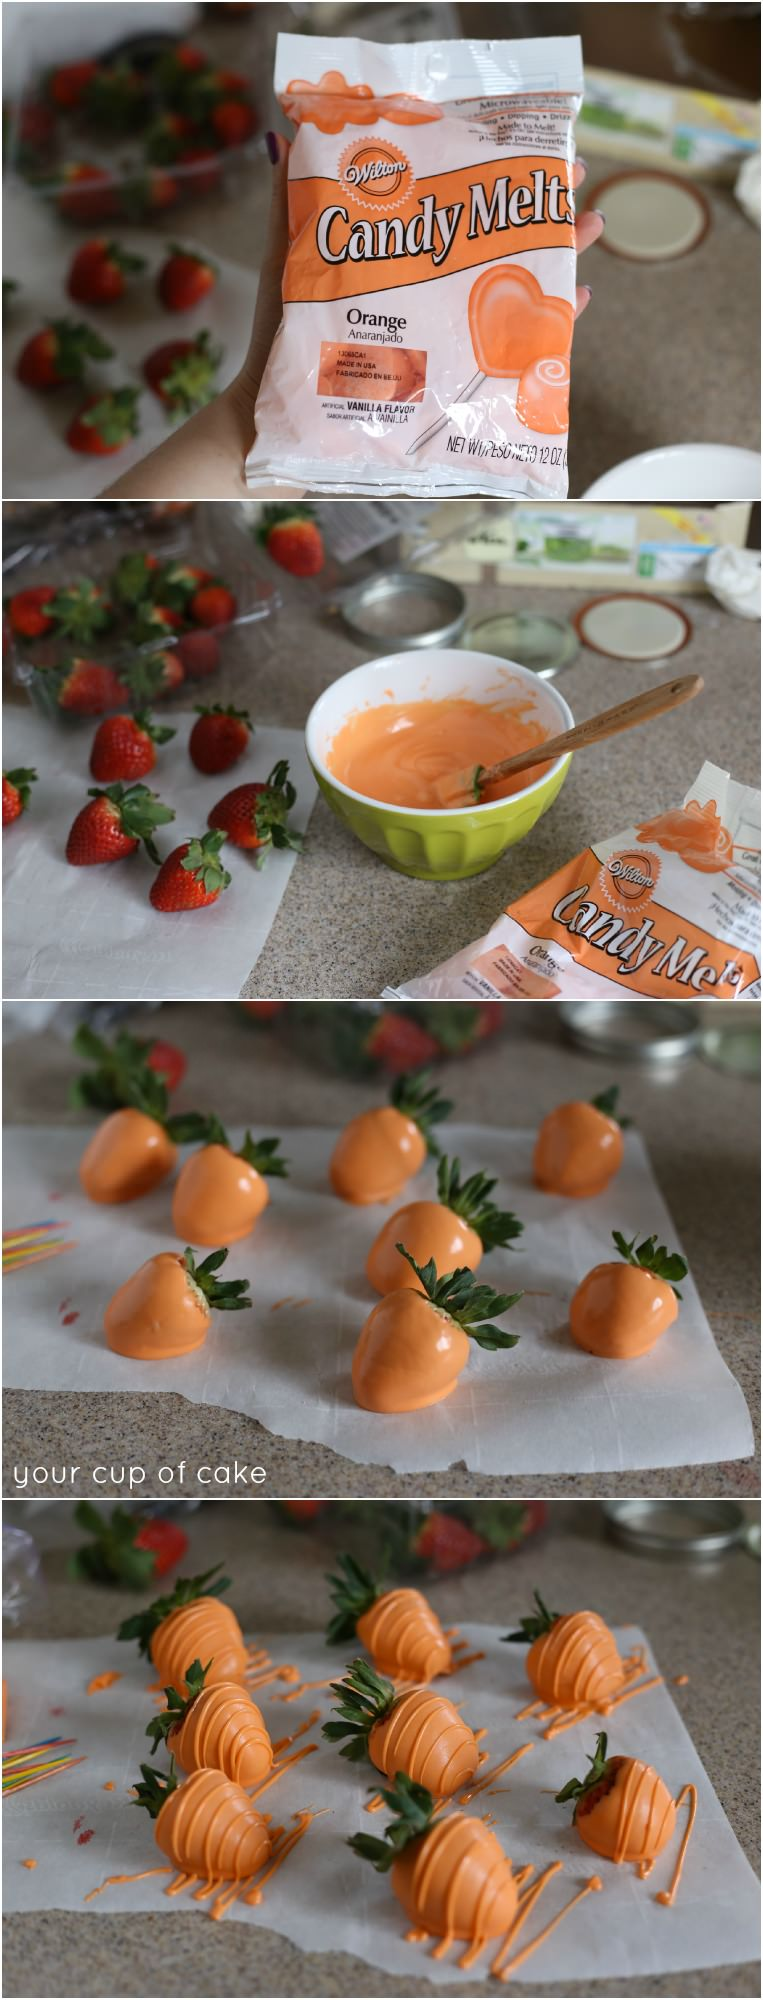 Chocolate Dipped Strawberry Carrots, ADORABLE!